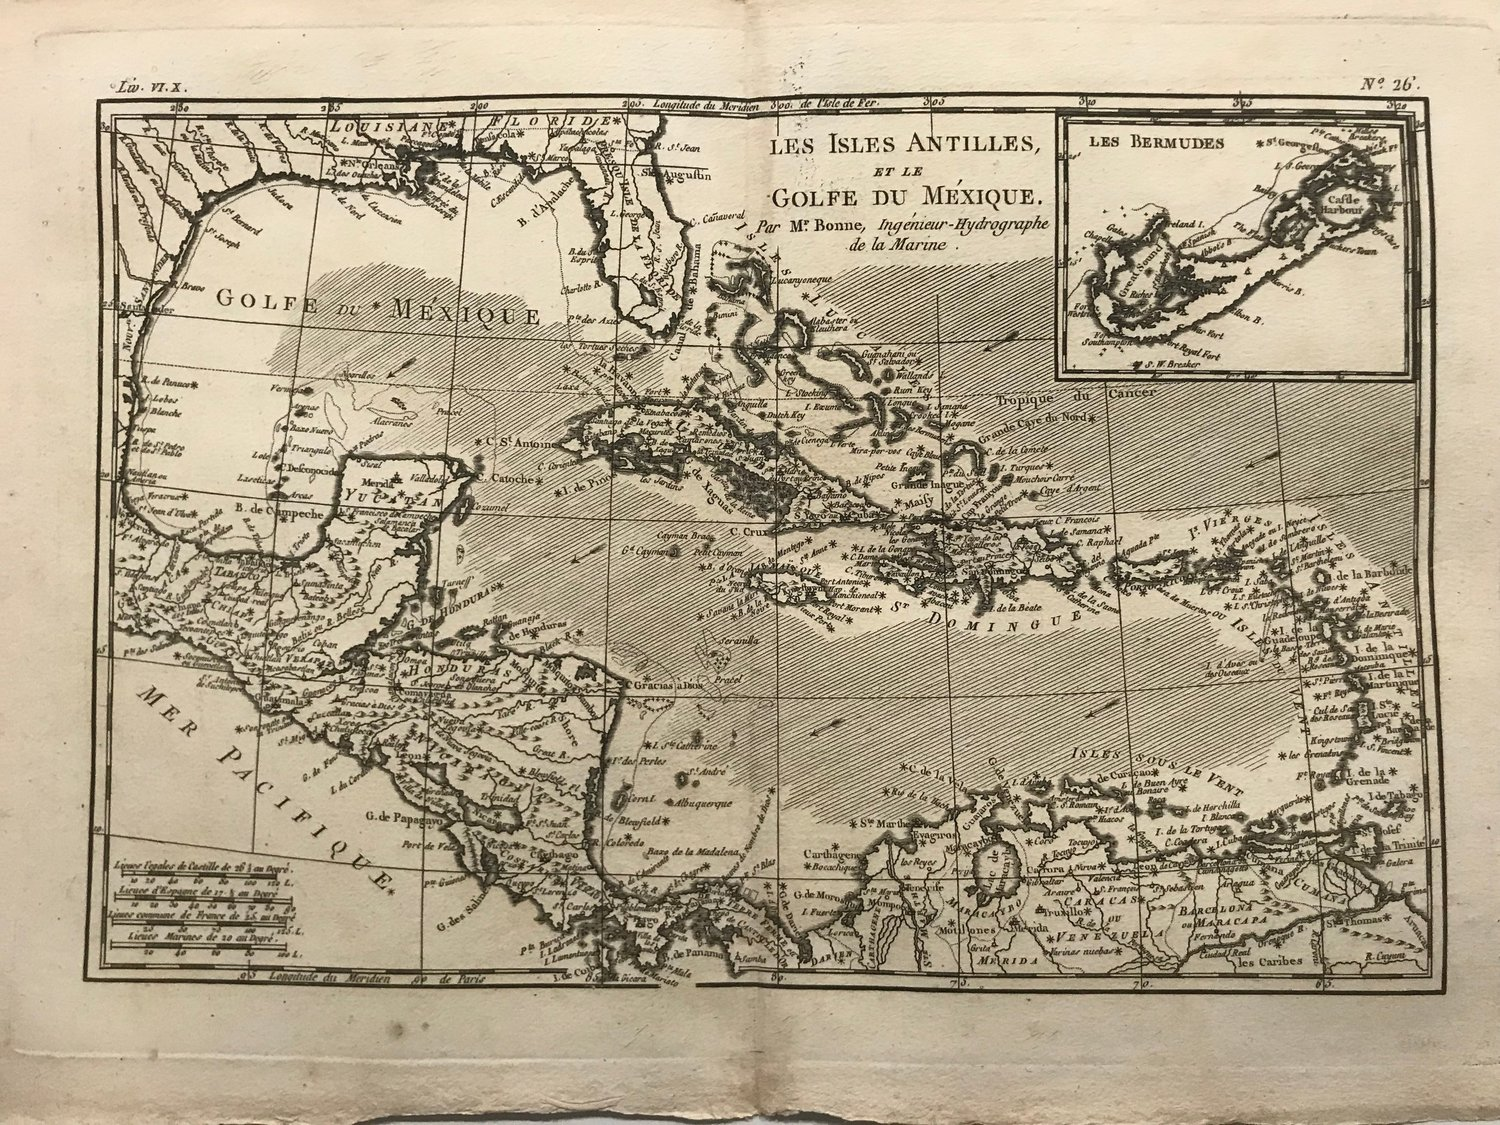 1780 Map of the Islands of the Caribbean and Gulf of Mexico with Inset Including Map Of Bermuda Bahamas on bermuda on map, bermuda atlantic ocean map, bermuda united states map, bermuda russia map, bermuda ferry, bermuda beach map, caribbean map, bermuda satellite map, bermuda puerto rico map, bermuda parish map, bermuda attractions map, bermuda south carolina map, bermuda landscape, bermuda hotel map, bermuda street map, bermuda beach bars, bermuda tourist map, bermuda port, bermuda hamilton map,